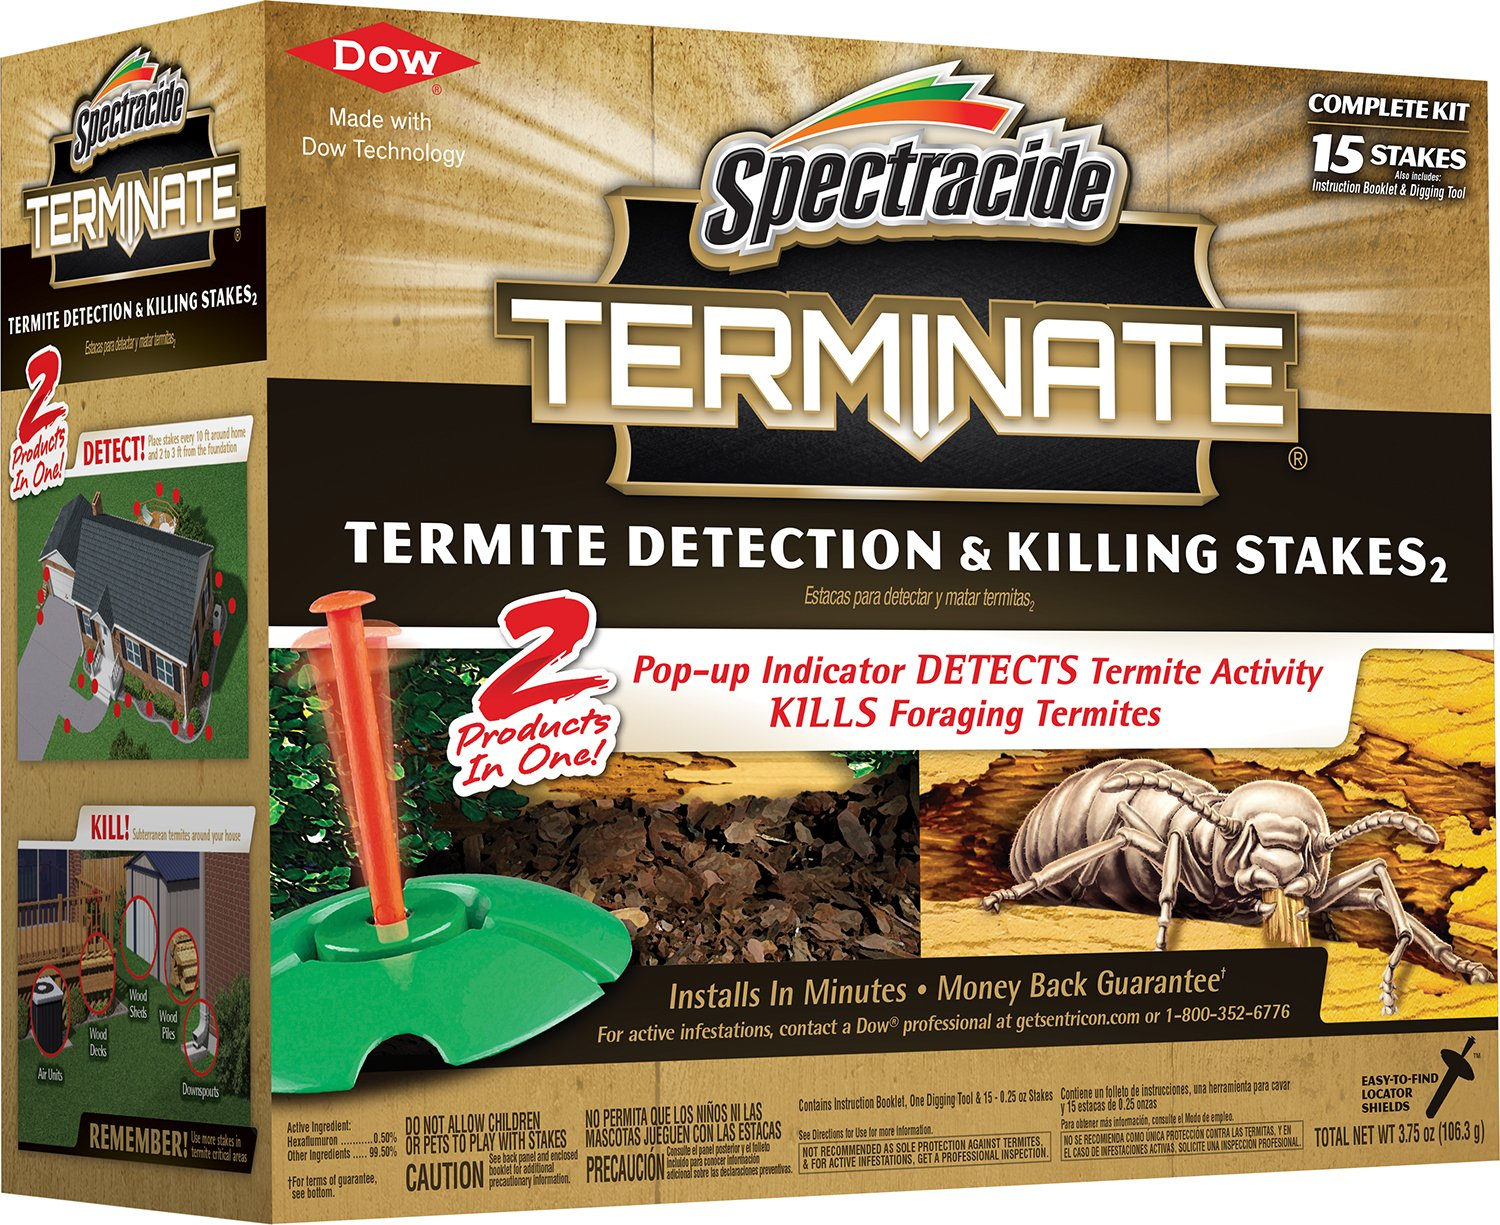 Spectracide 96115-1 Terminate Termite Detection & Killing Stakes, 15-Count, 6-Pack, Case Pack of 6 by Spectracide